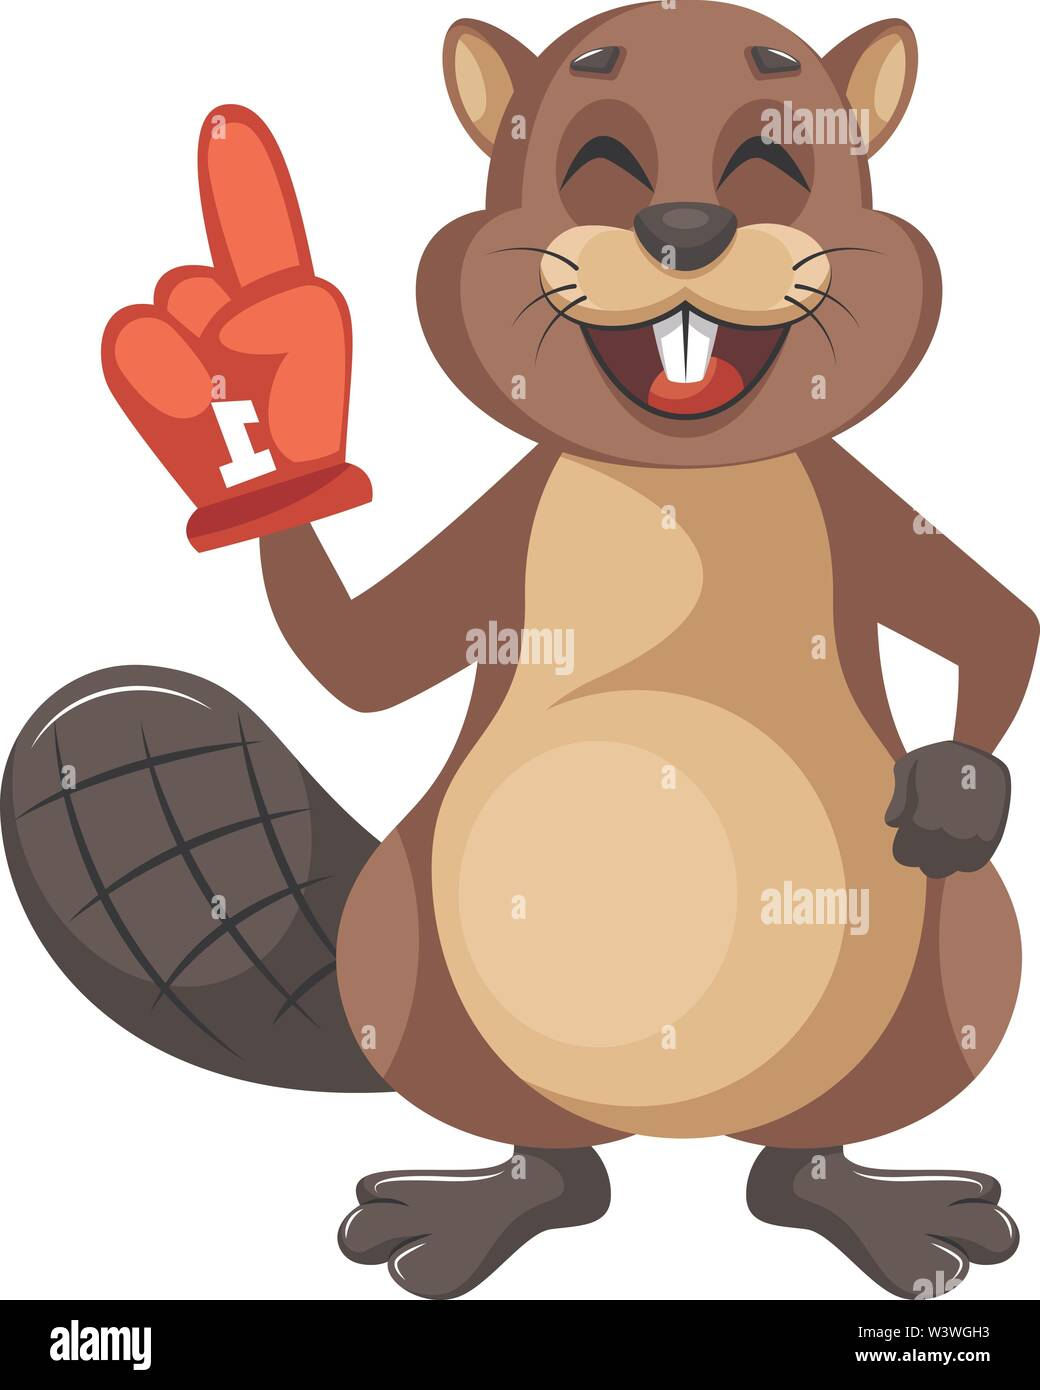 Beaver with big glove, illustration, vector on white background. - Stock Image